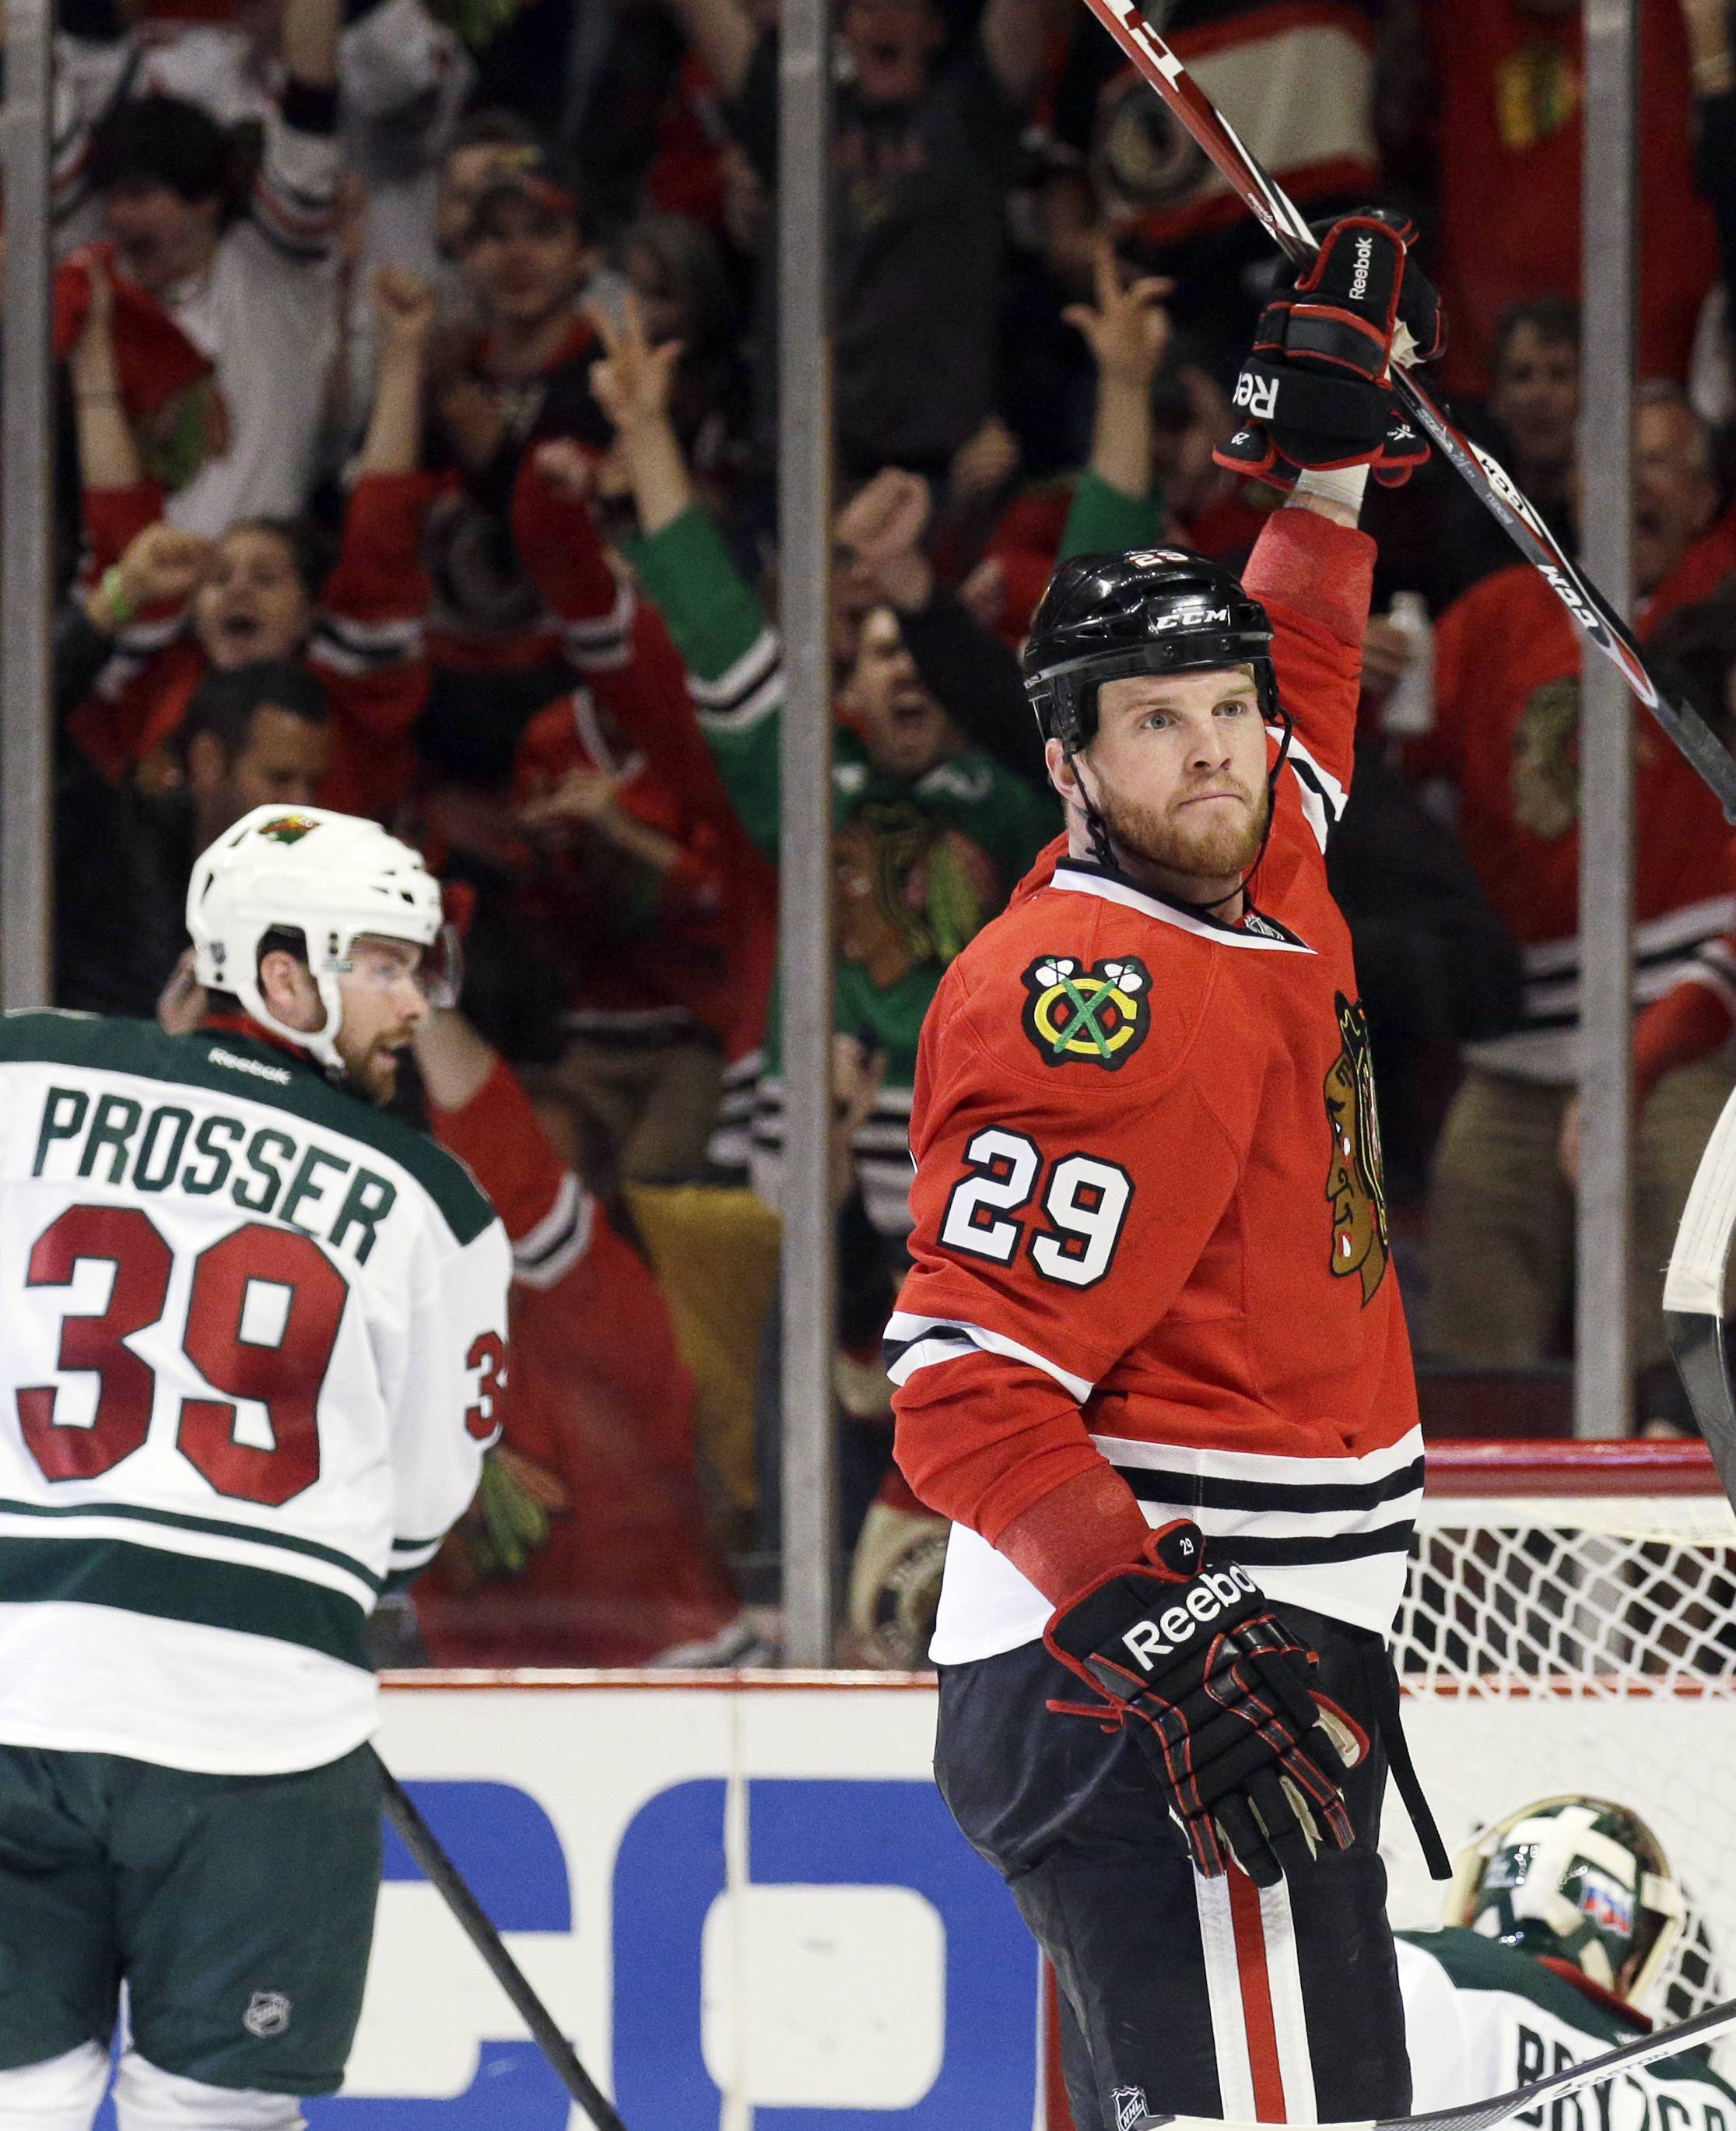 Blackhawks forward Bryan Bickell celebrates after scoring his second-period goal as the Minnesota Wild's Nate Prosser reacts Sunday at United Center.